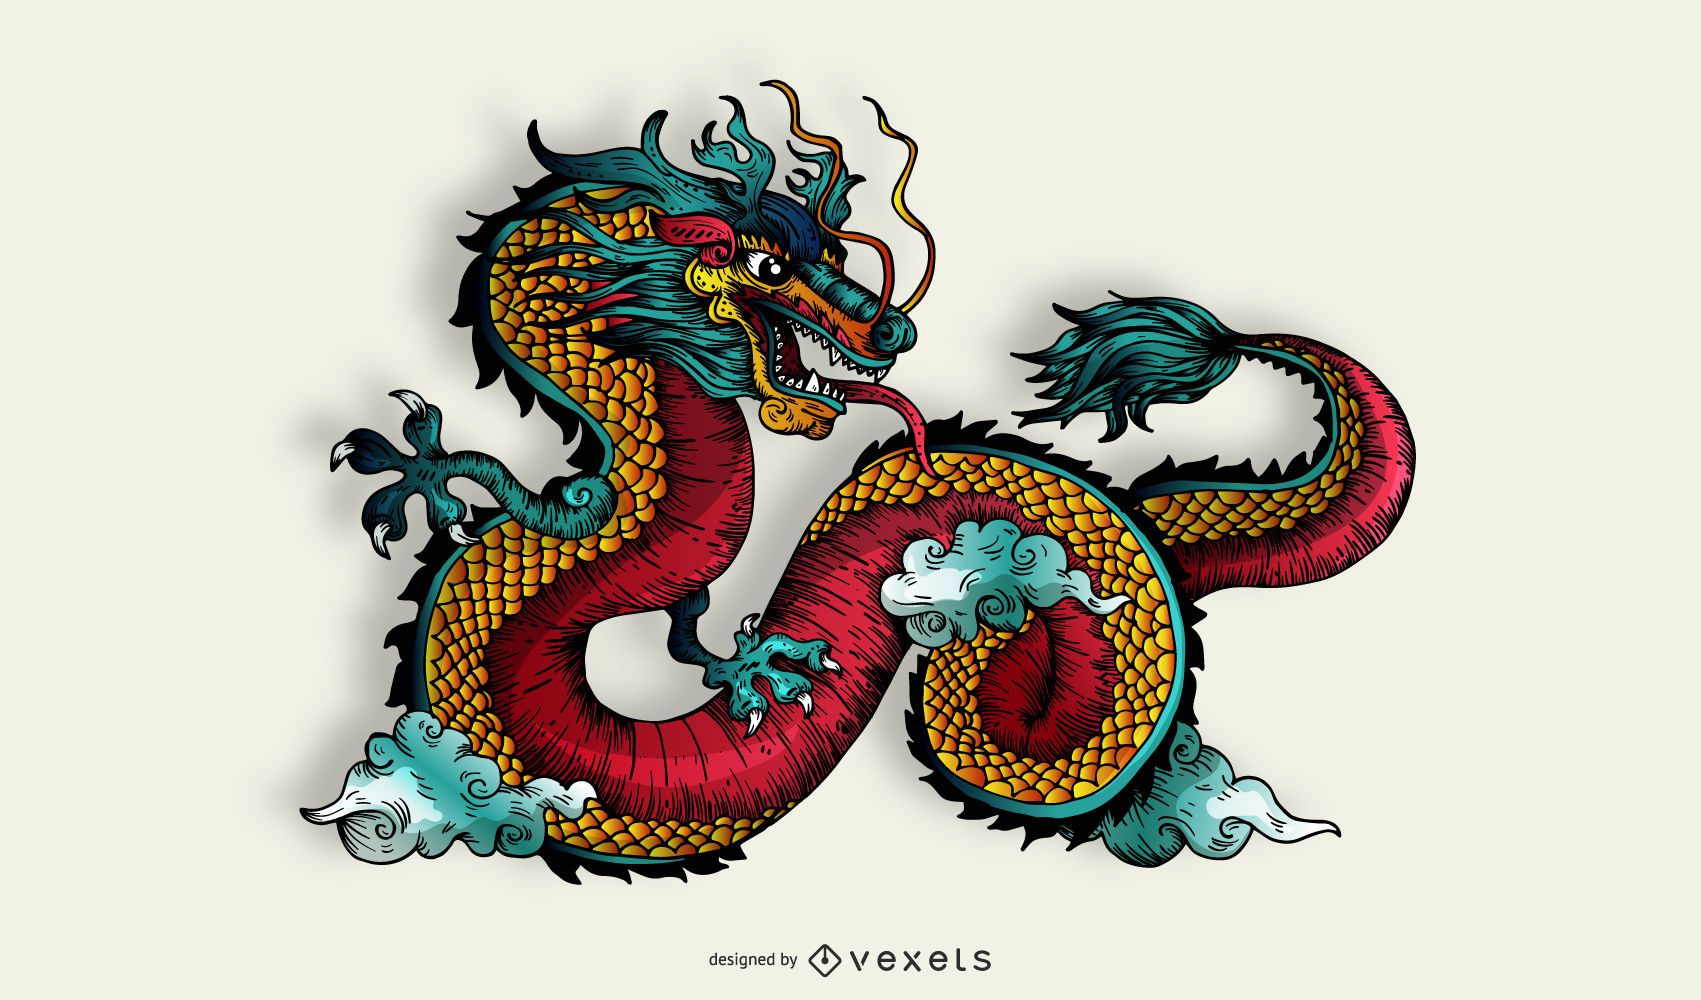 Funky Dragon with Red Curvy Body